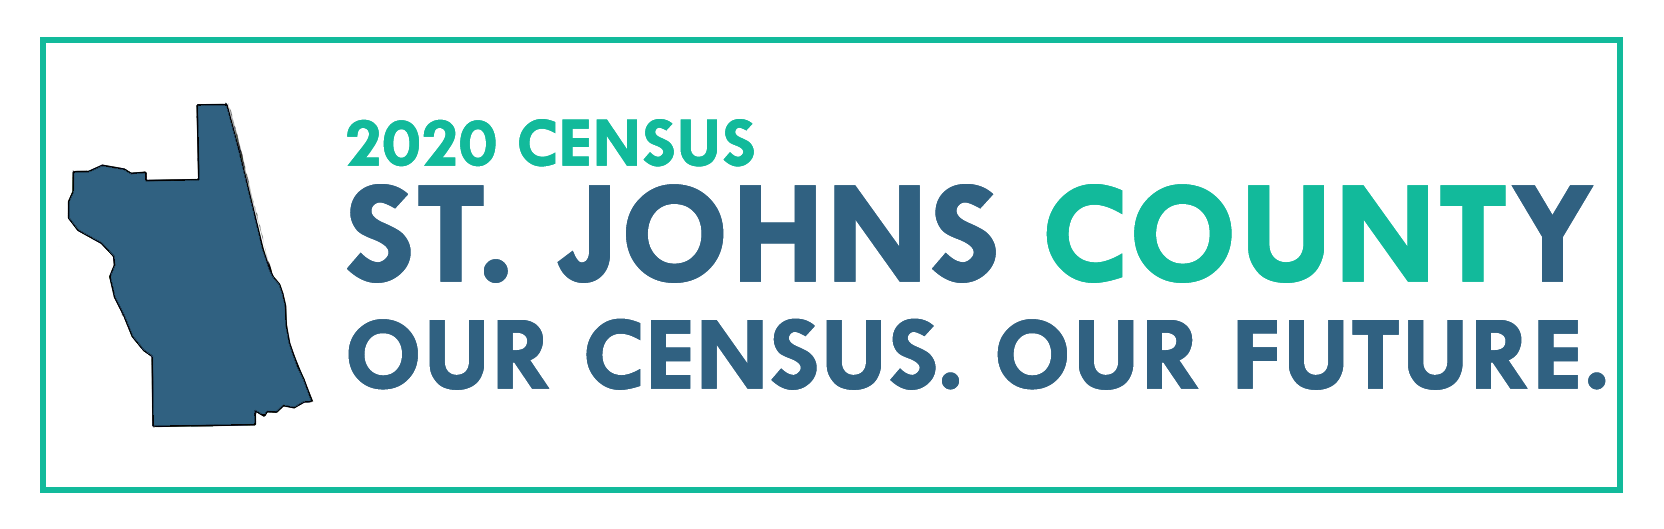 2020 Census St. Johns County